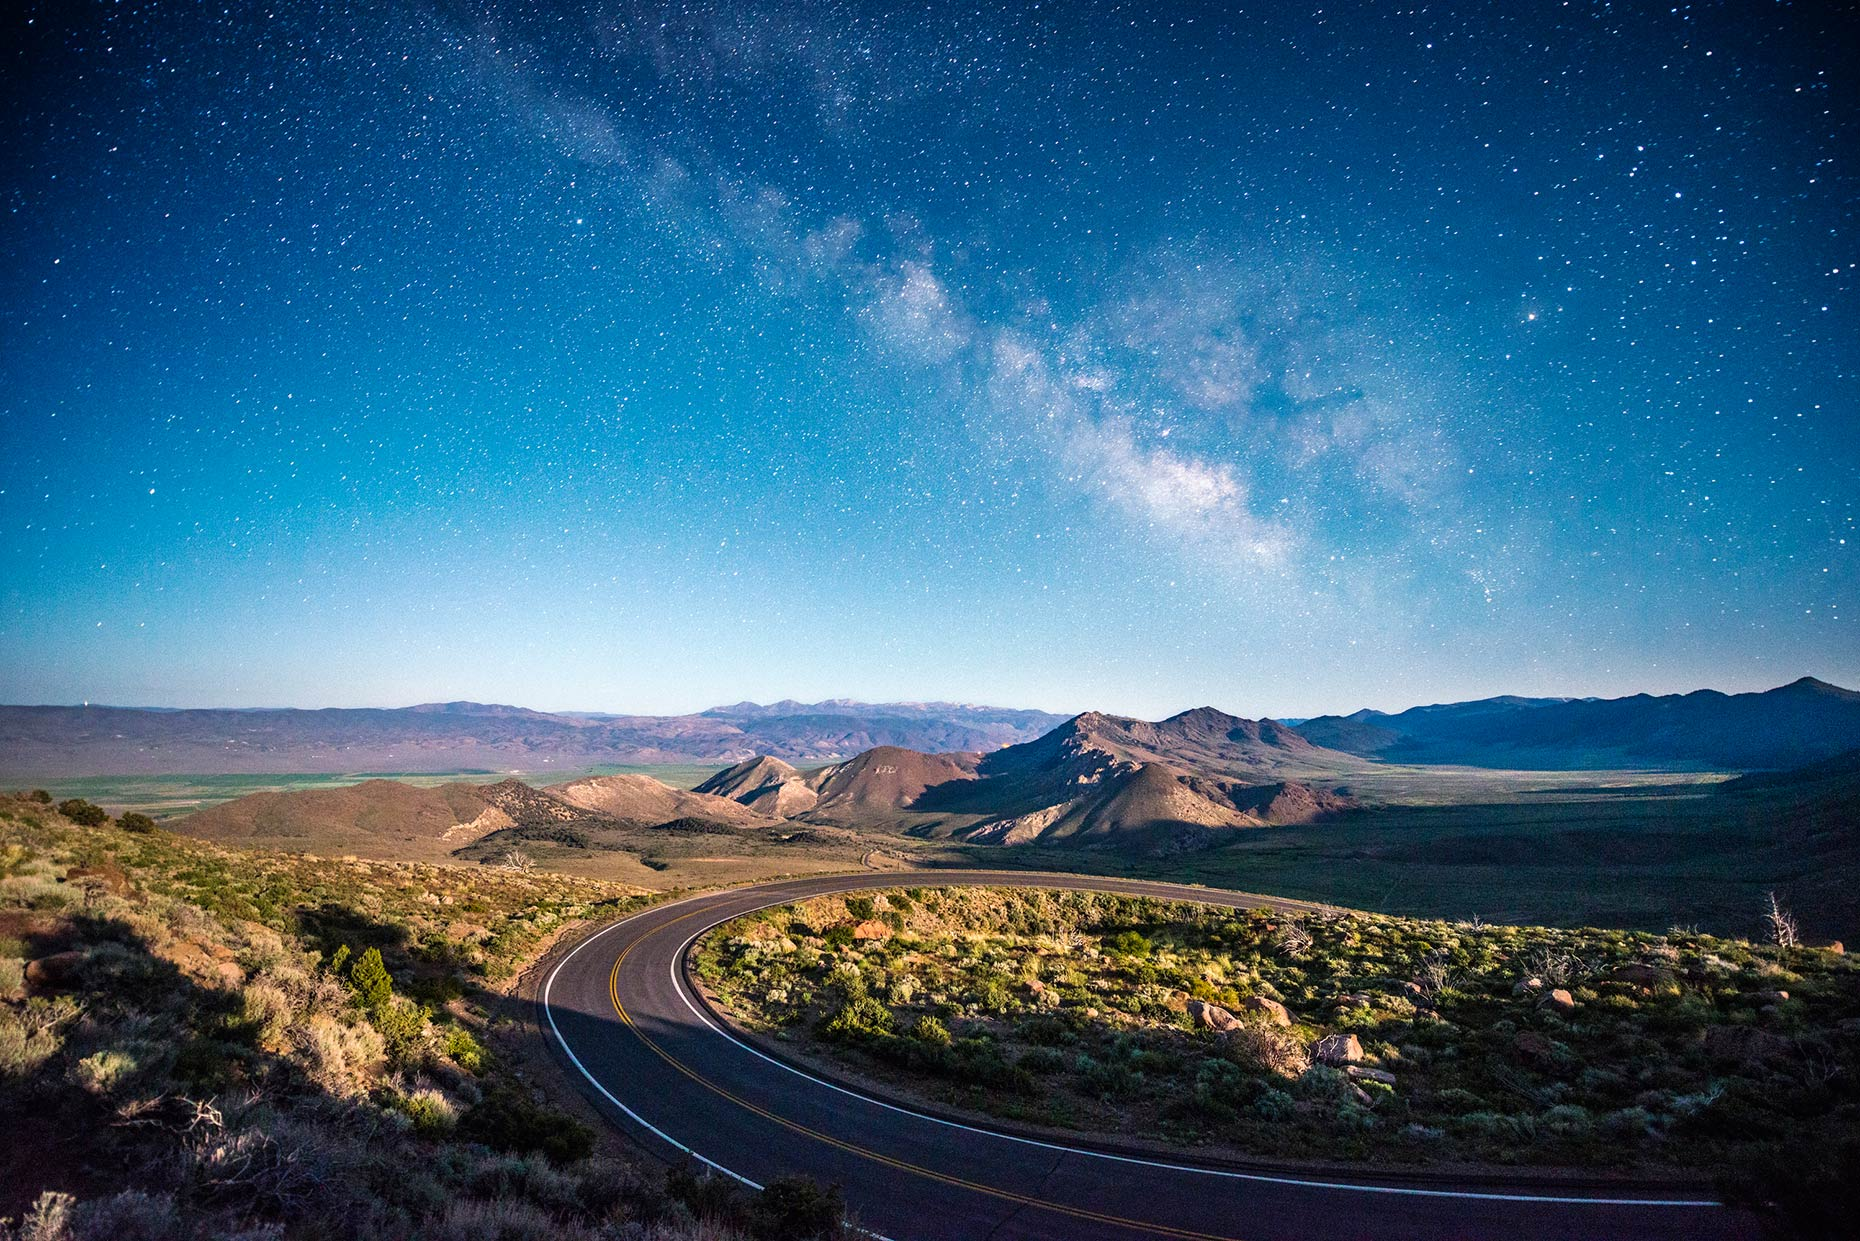 Night Sky - Winding Road Under The Milky Way - Monitor Pass, California